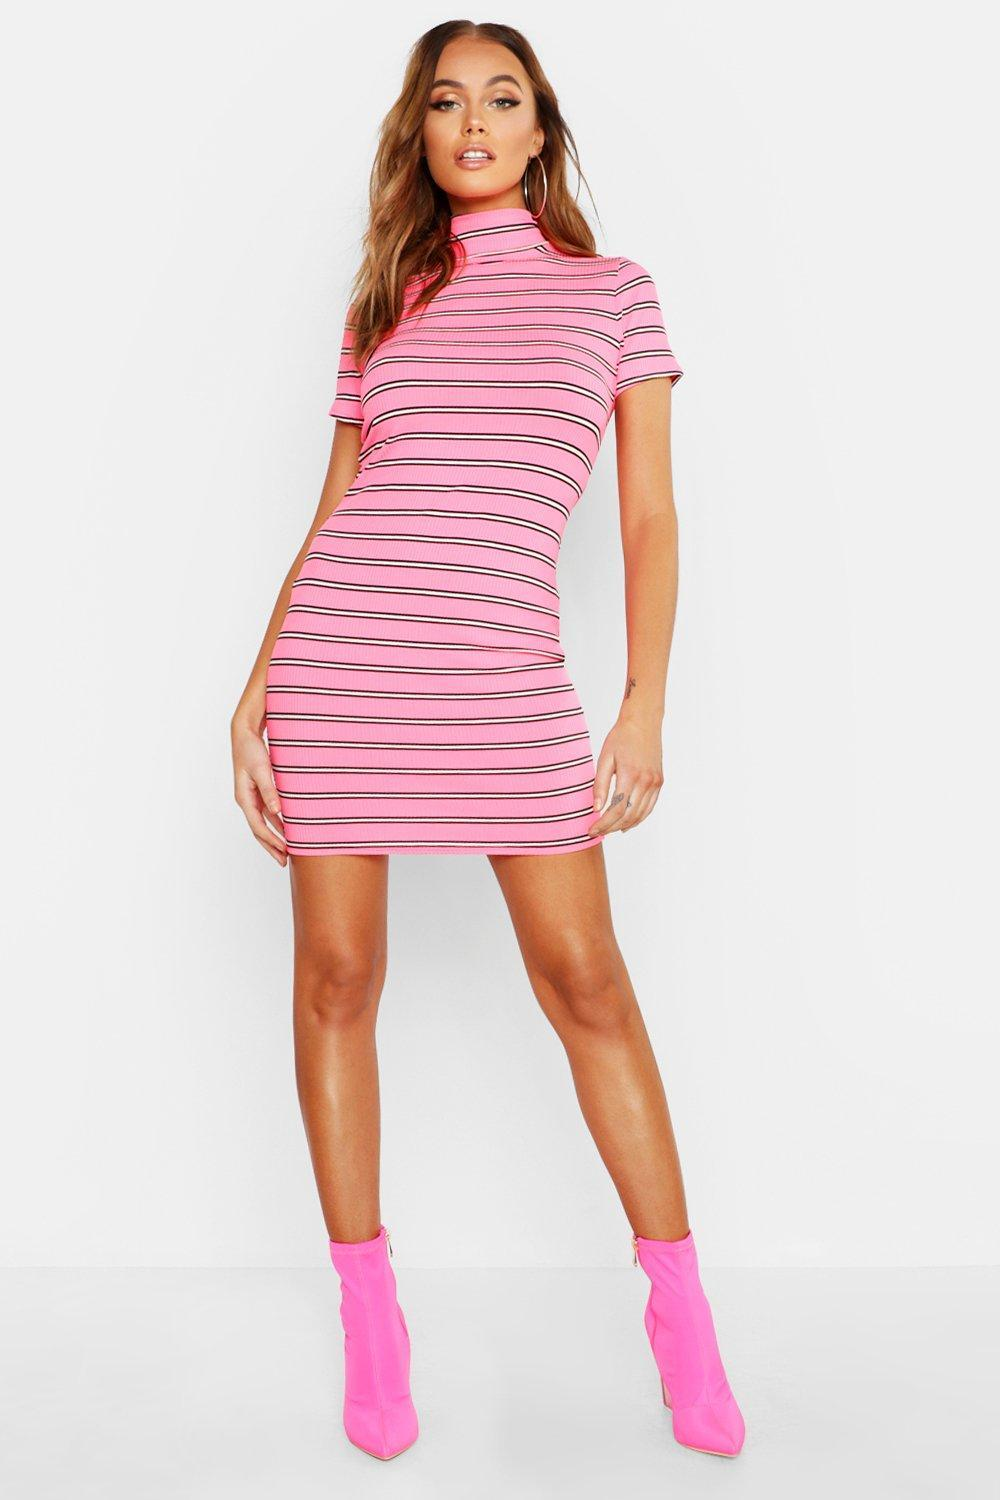 Boohoo ribbed bodycon dress with high neck in pink